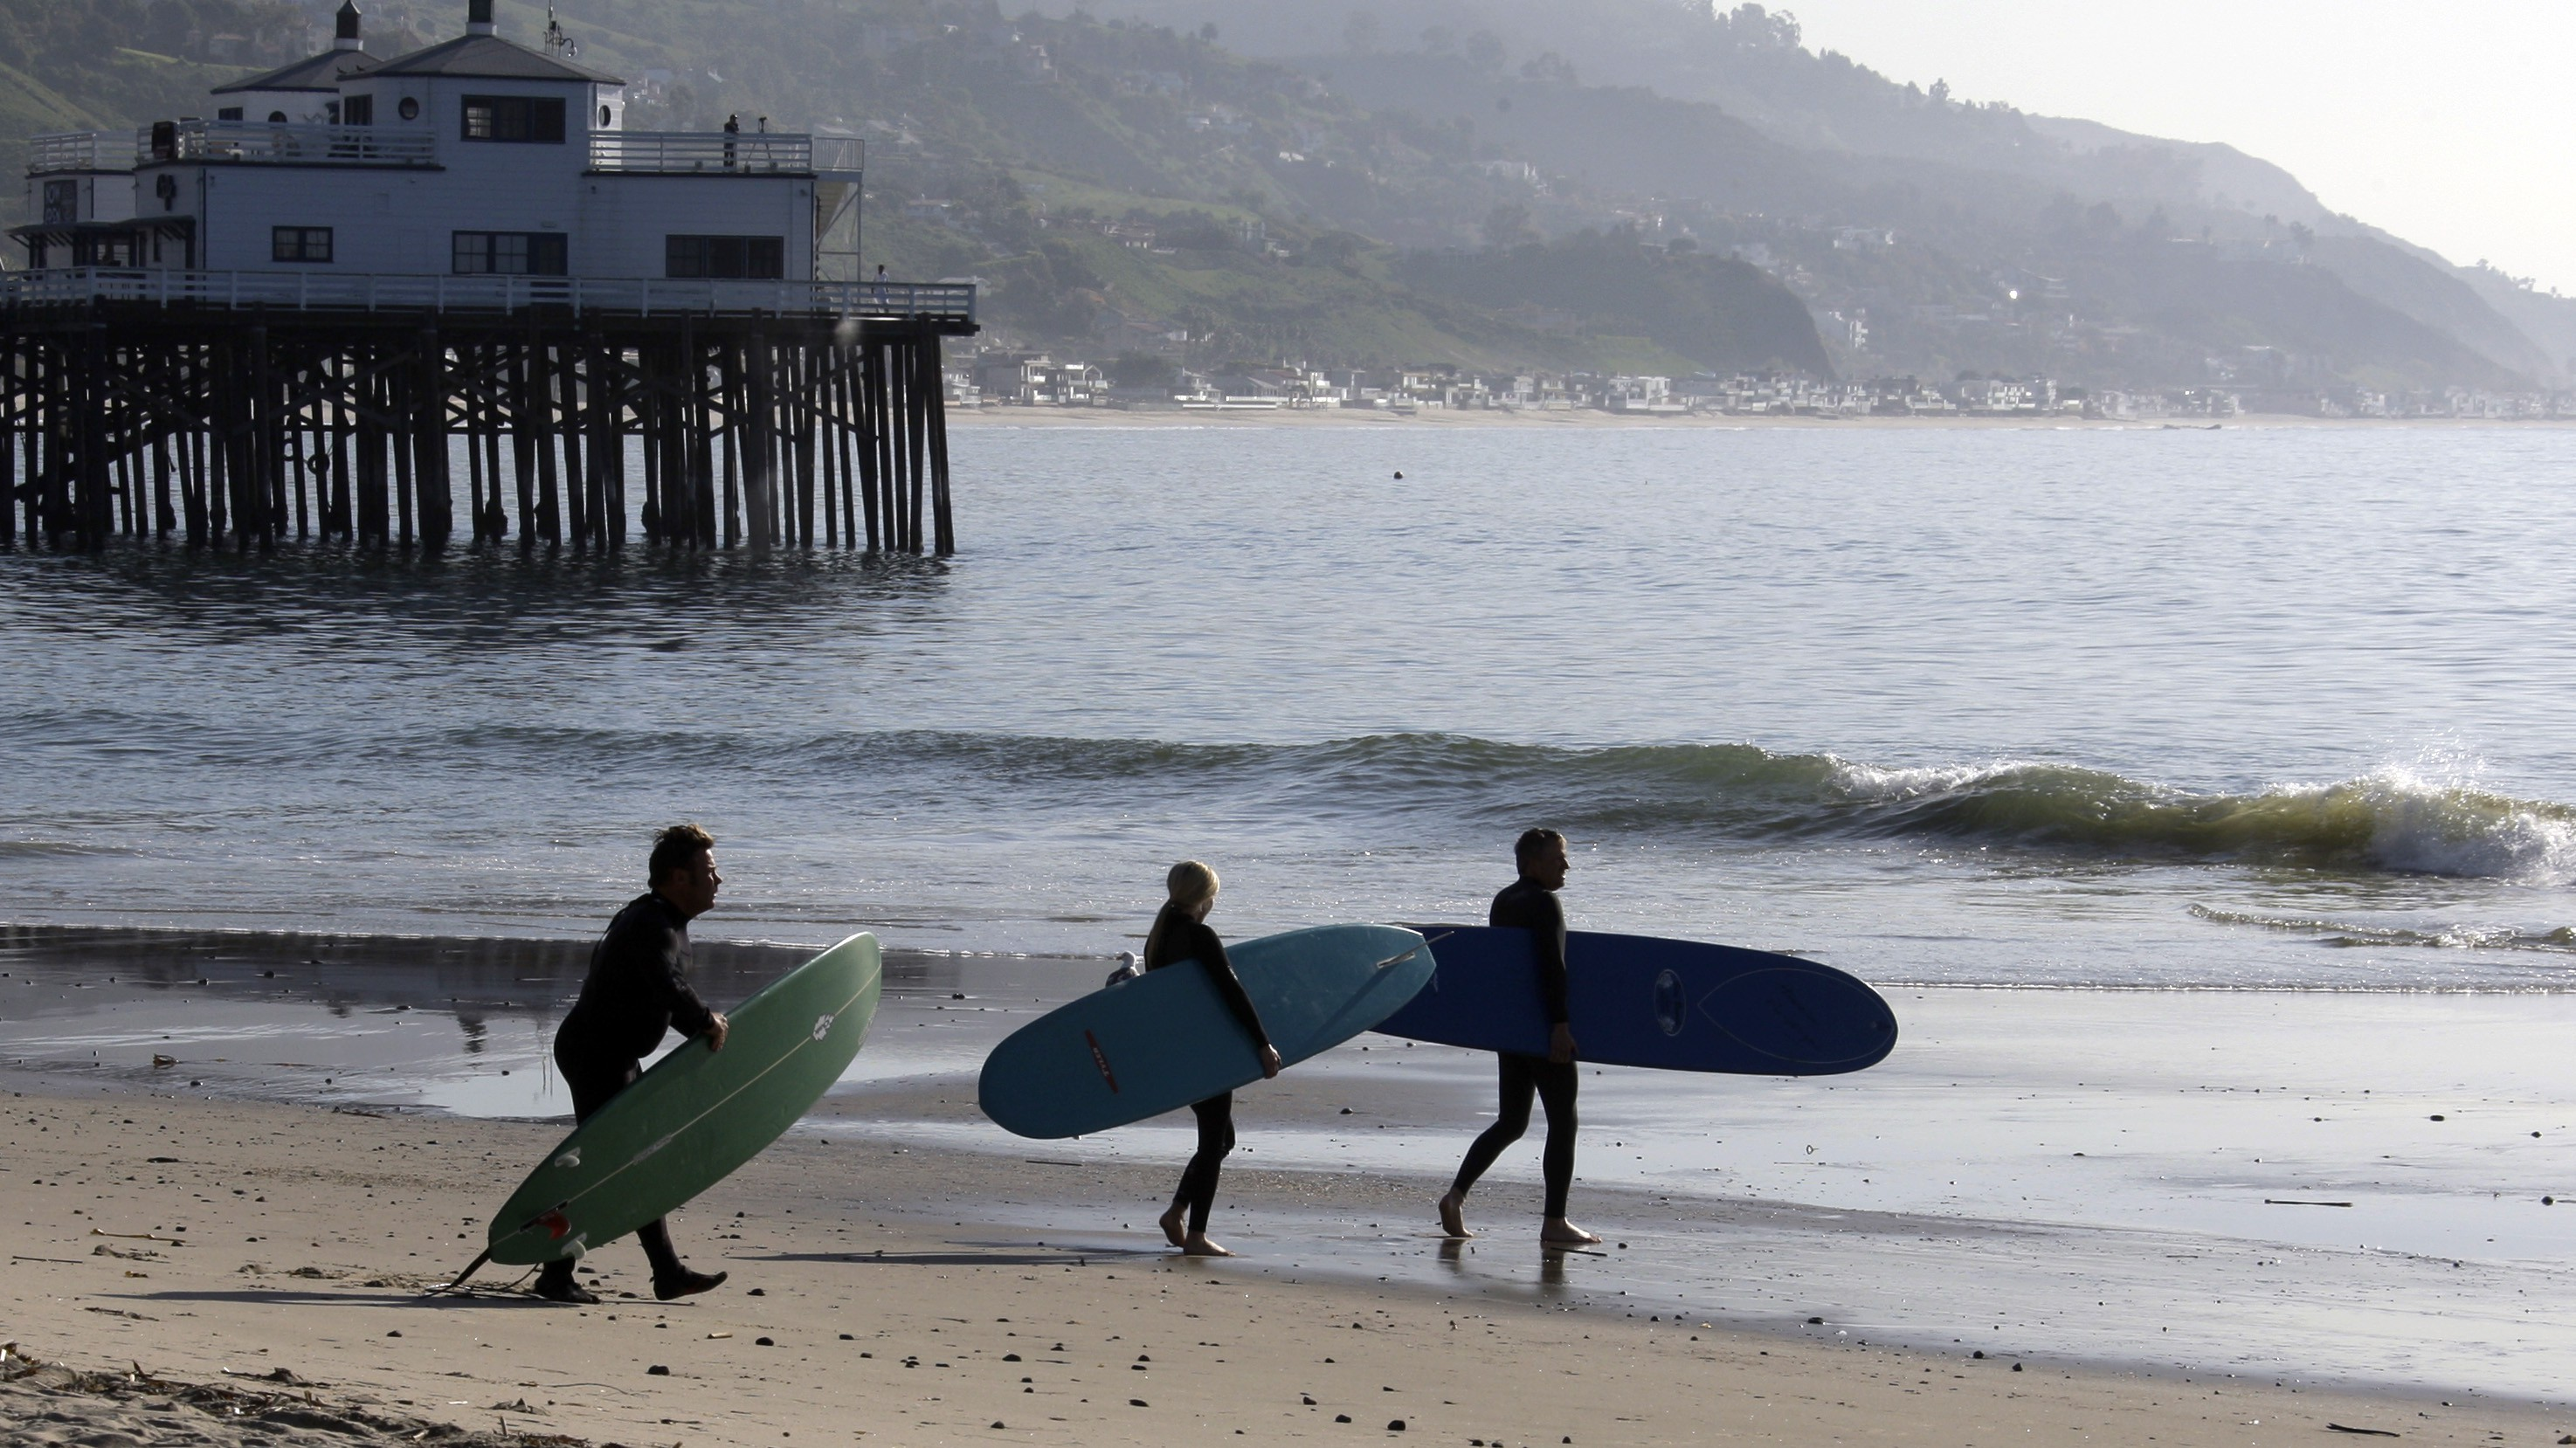 Surfers head for the waves at about the time the effects of a tsunami were expected, at Surfrider Beach in Malibu, Calif., Friday, March 11, 2011.